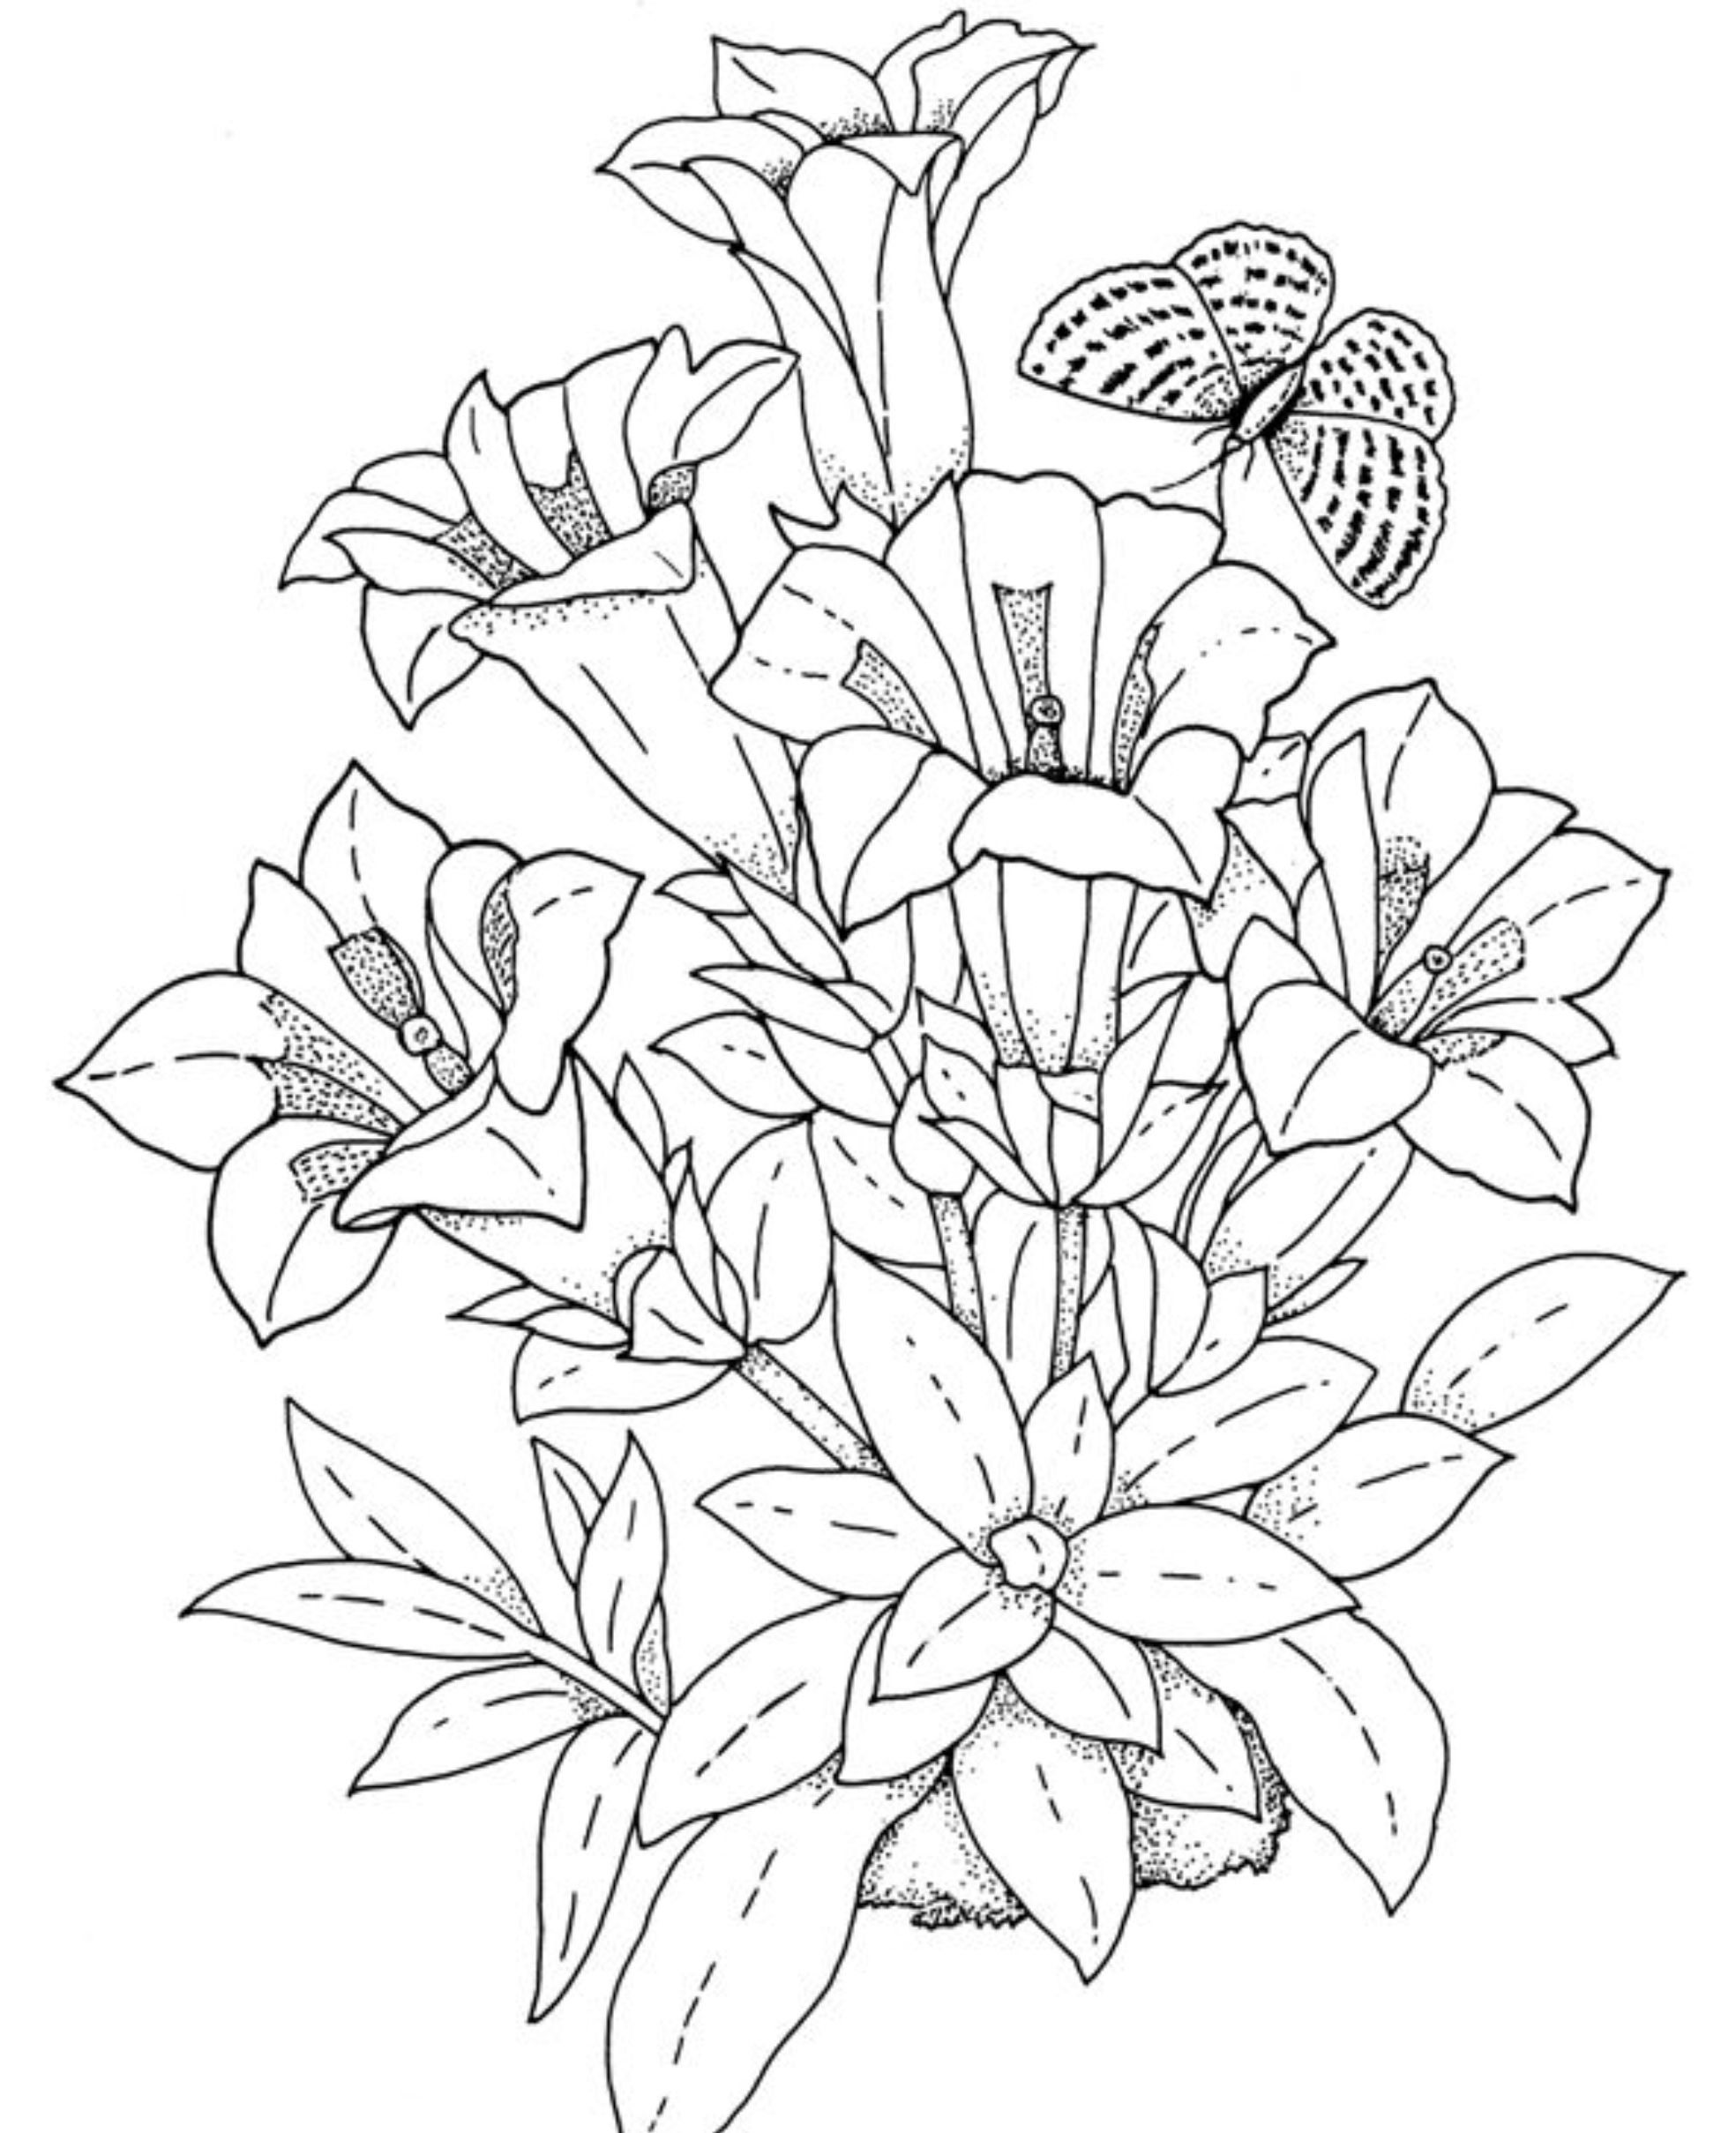 Download Realistic Flowers Coloring Pages Or Print Realistic